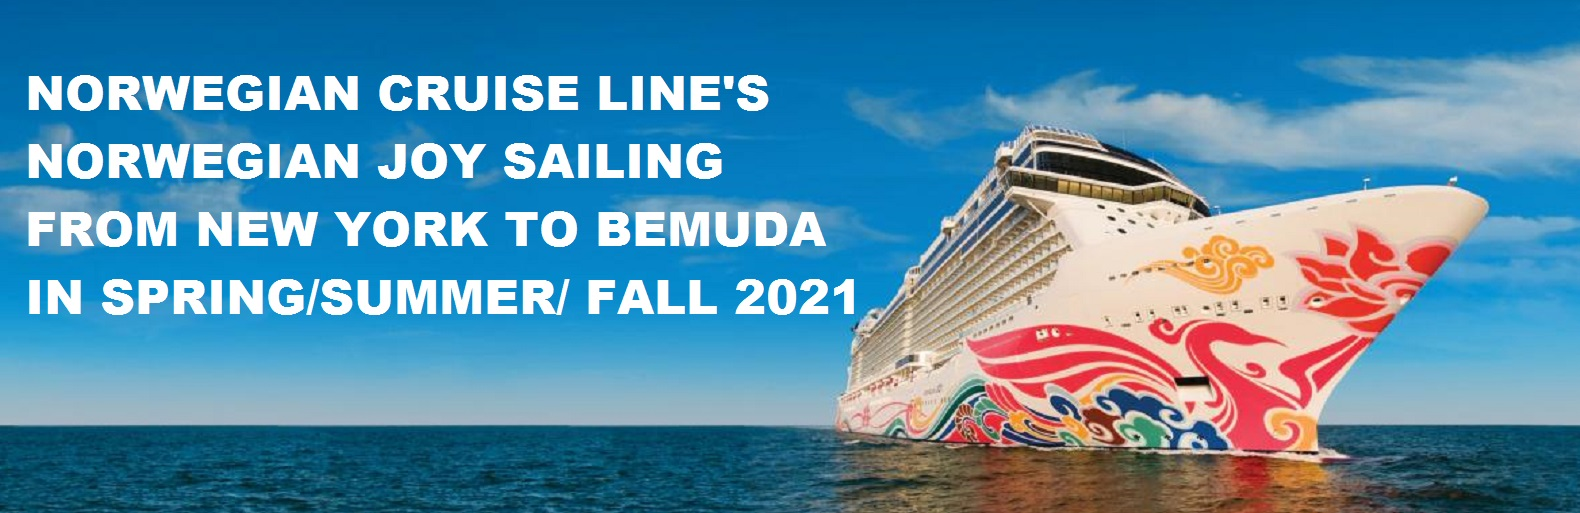 Norwegian Cruise Line's Norwegian Joy Sailing from New York to Bermuda in 2021.